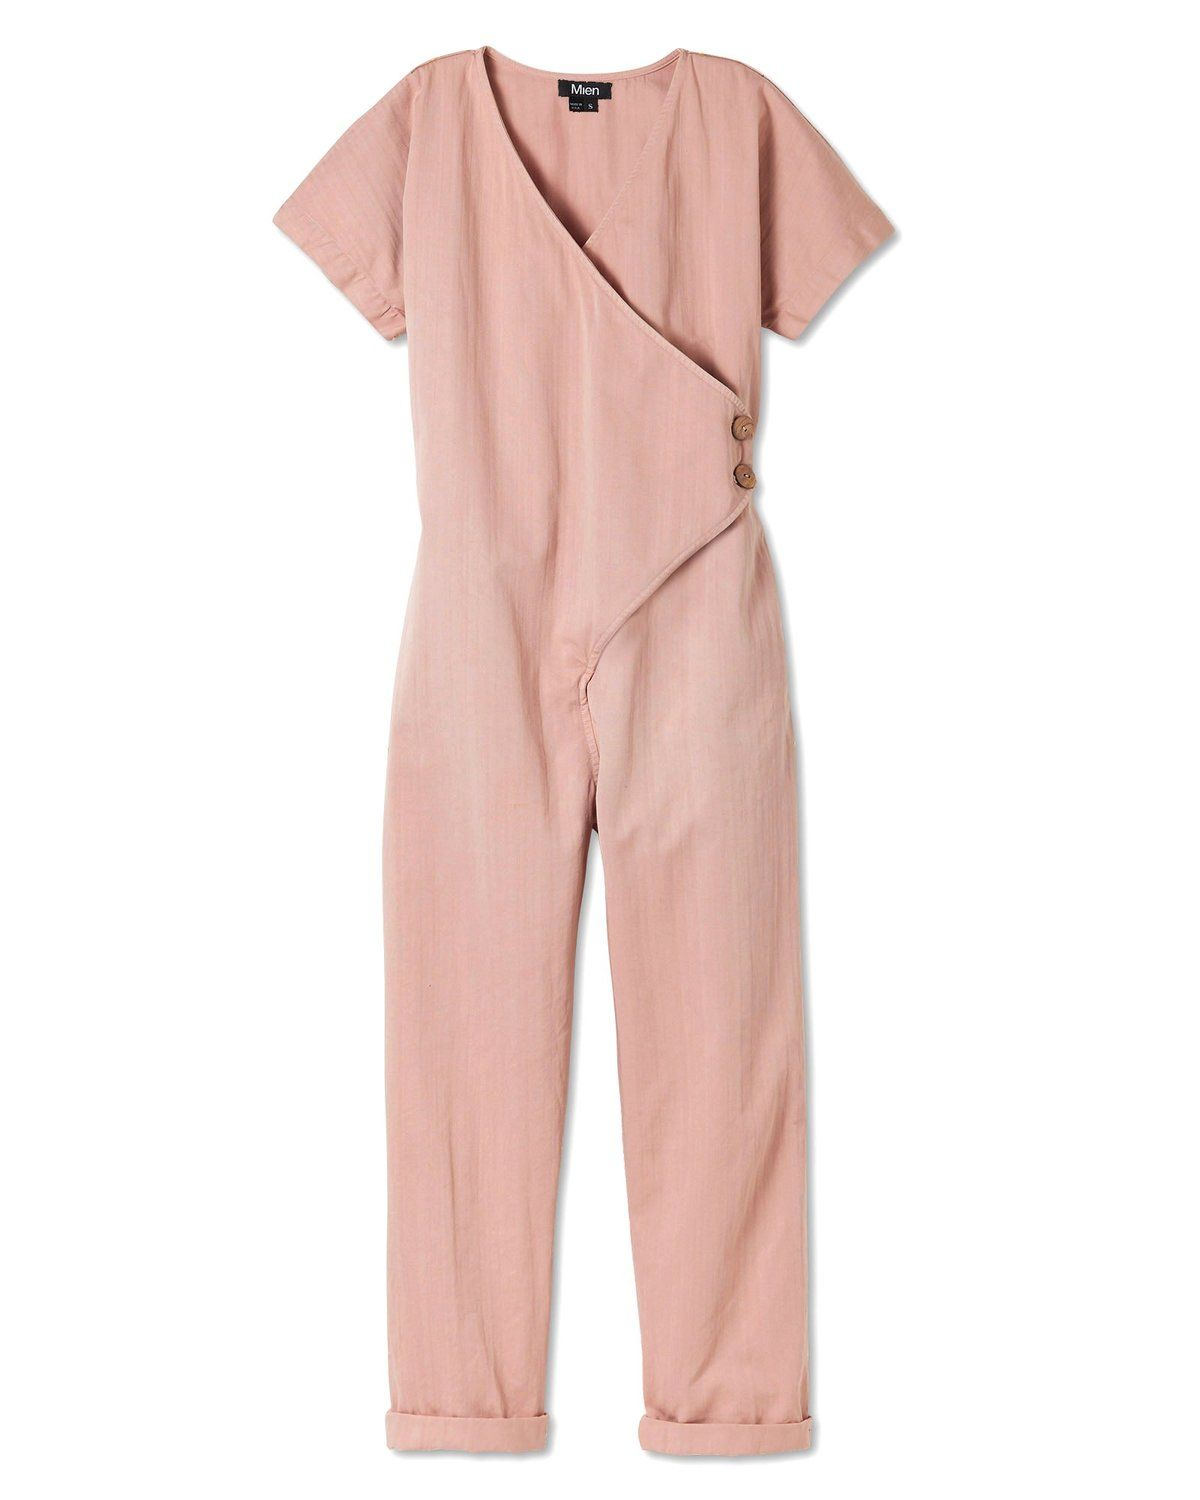 Kindness Jumpsuit Dusty Rose Jumpsuit Rose Clothing Pink Jumpsuit